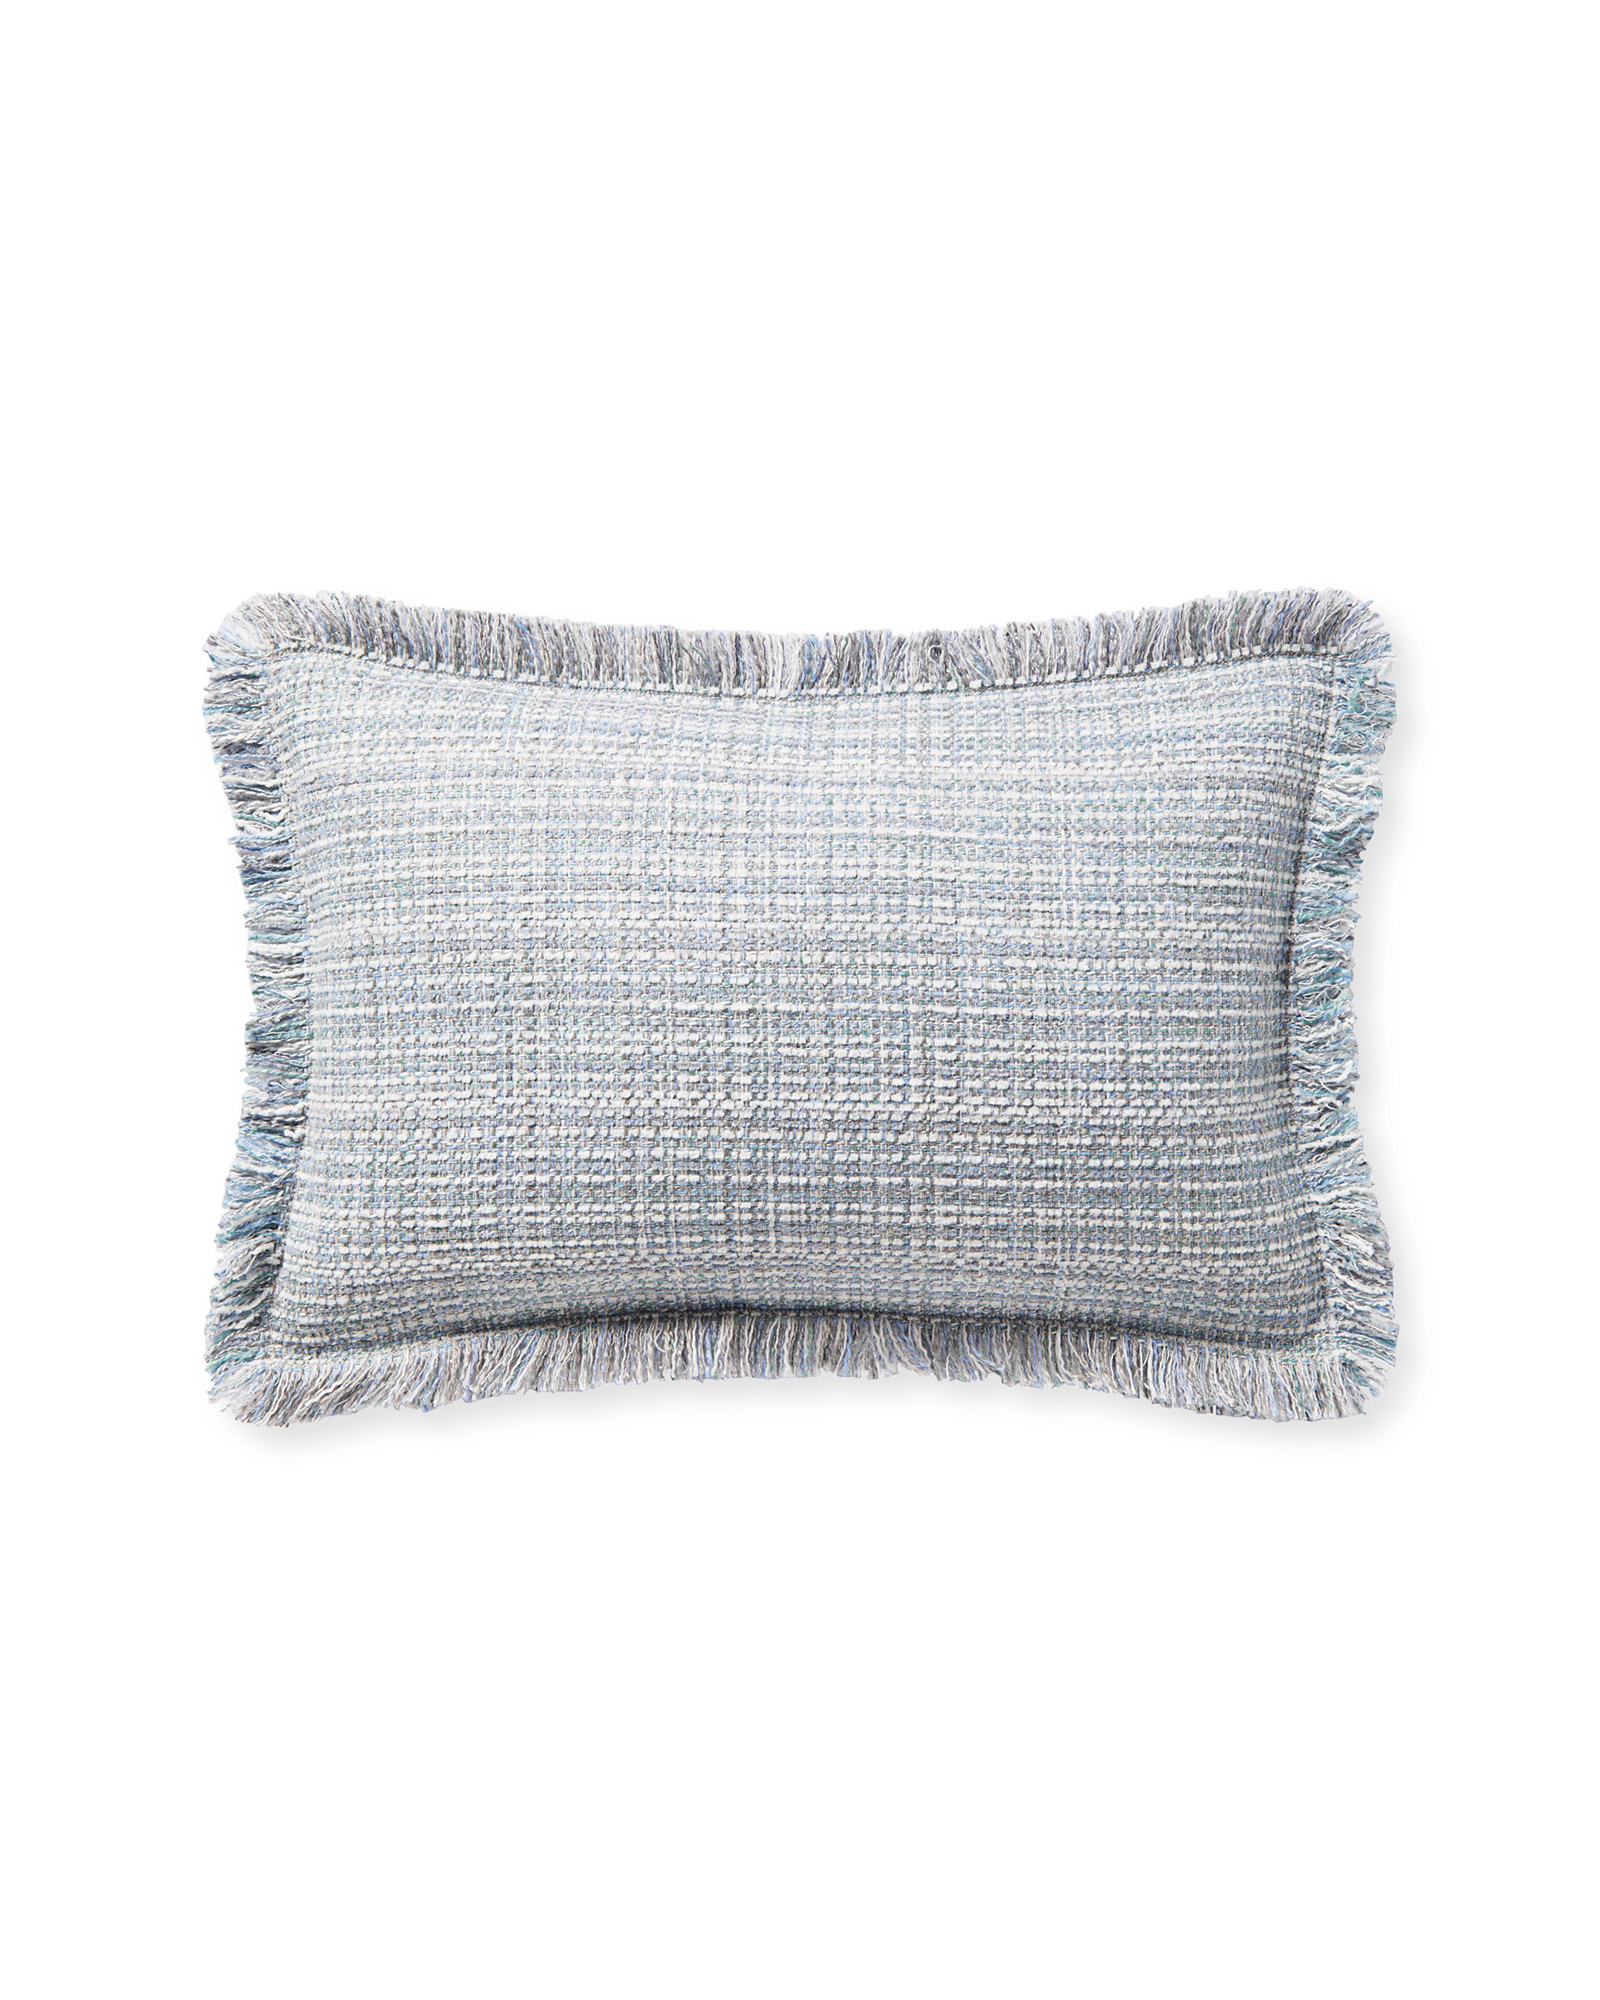 Perennials® Rosemount Pillow Cover, Coastal Blue